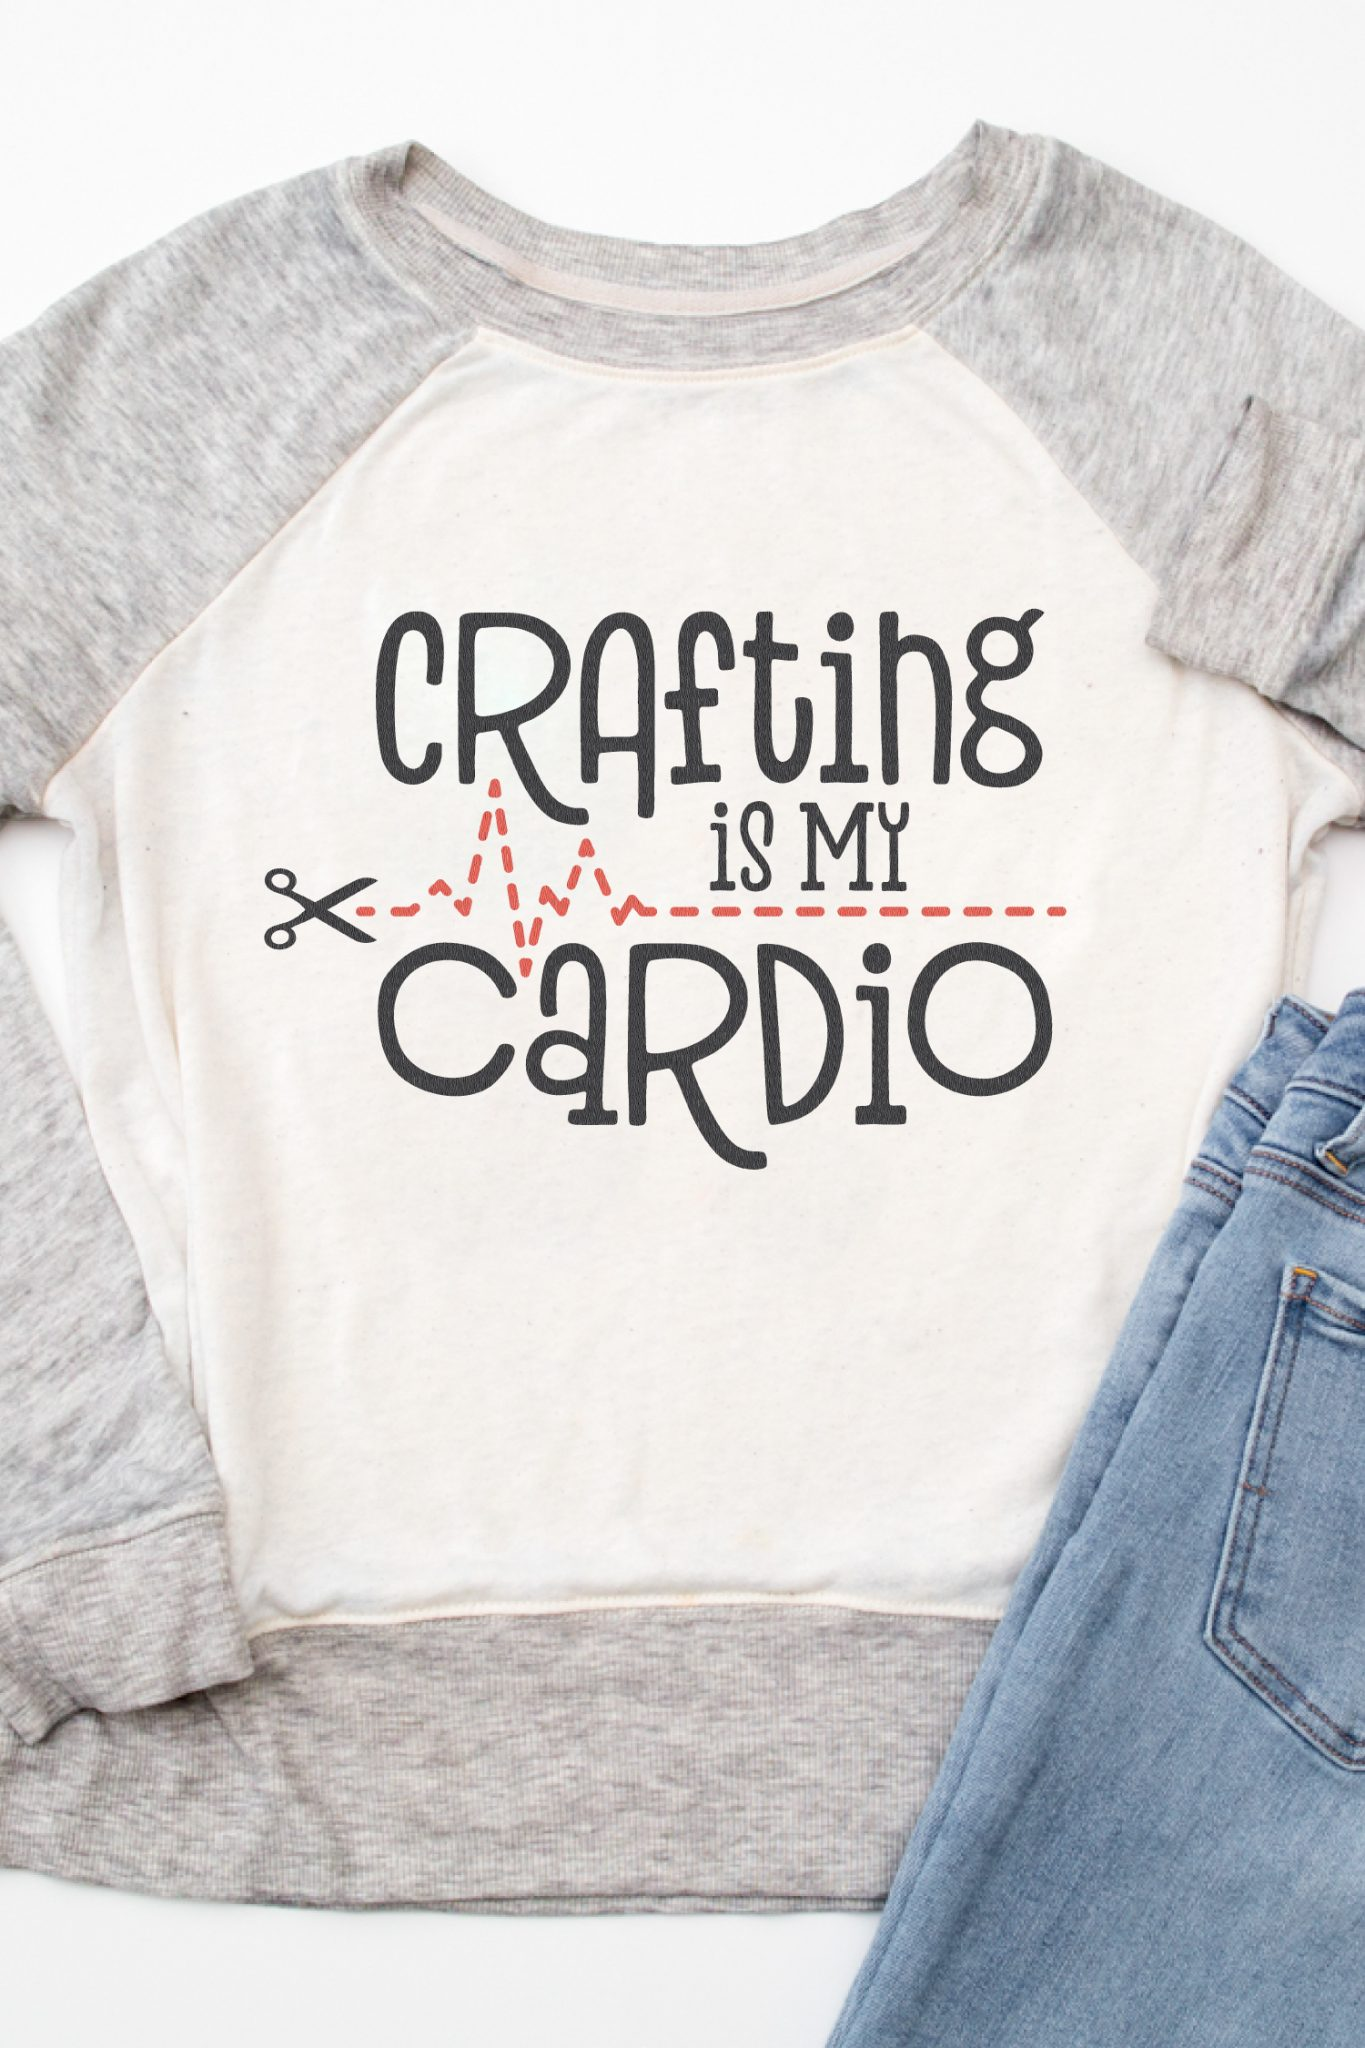 If you're burning calories in your craft room, this Crafting is My Cardio is for you! This free crafting SVG is perfect for t-shirts and hoodies, mugs for your pens, or an apron to protect you from glitter spills!